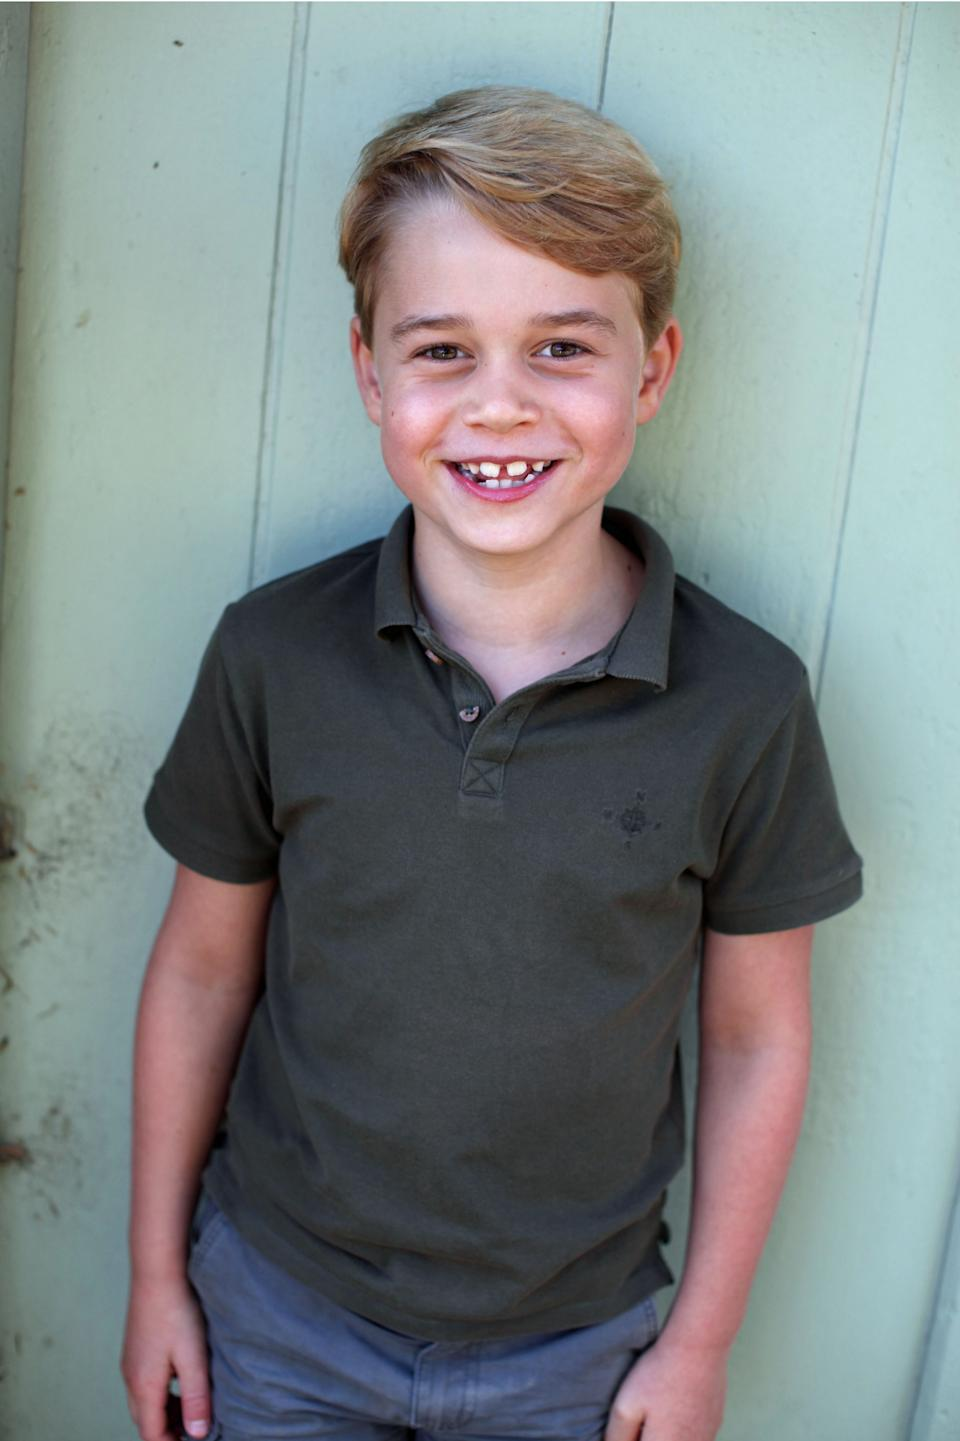 And, of course, Prince George, who turns seven on 22 July, 2020. (The Duchess of Cambridge)